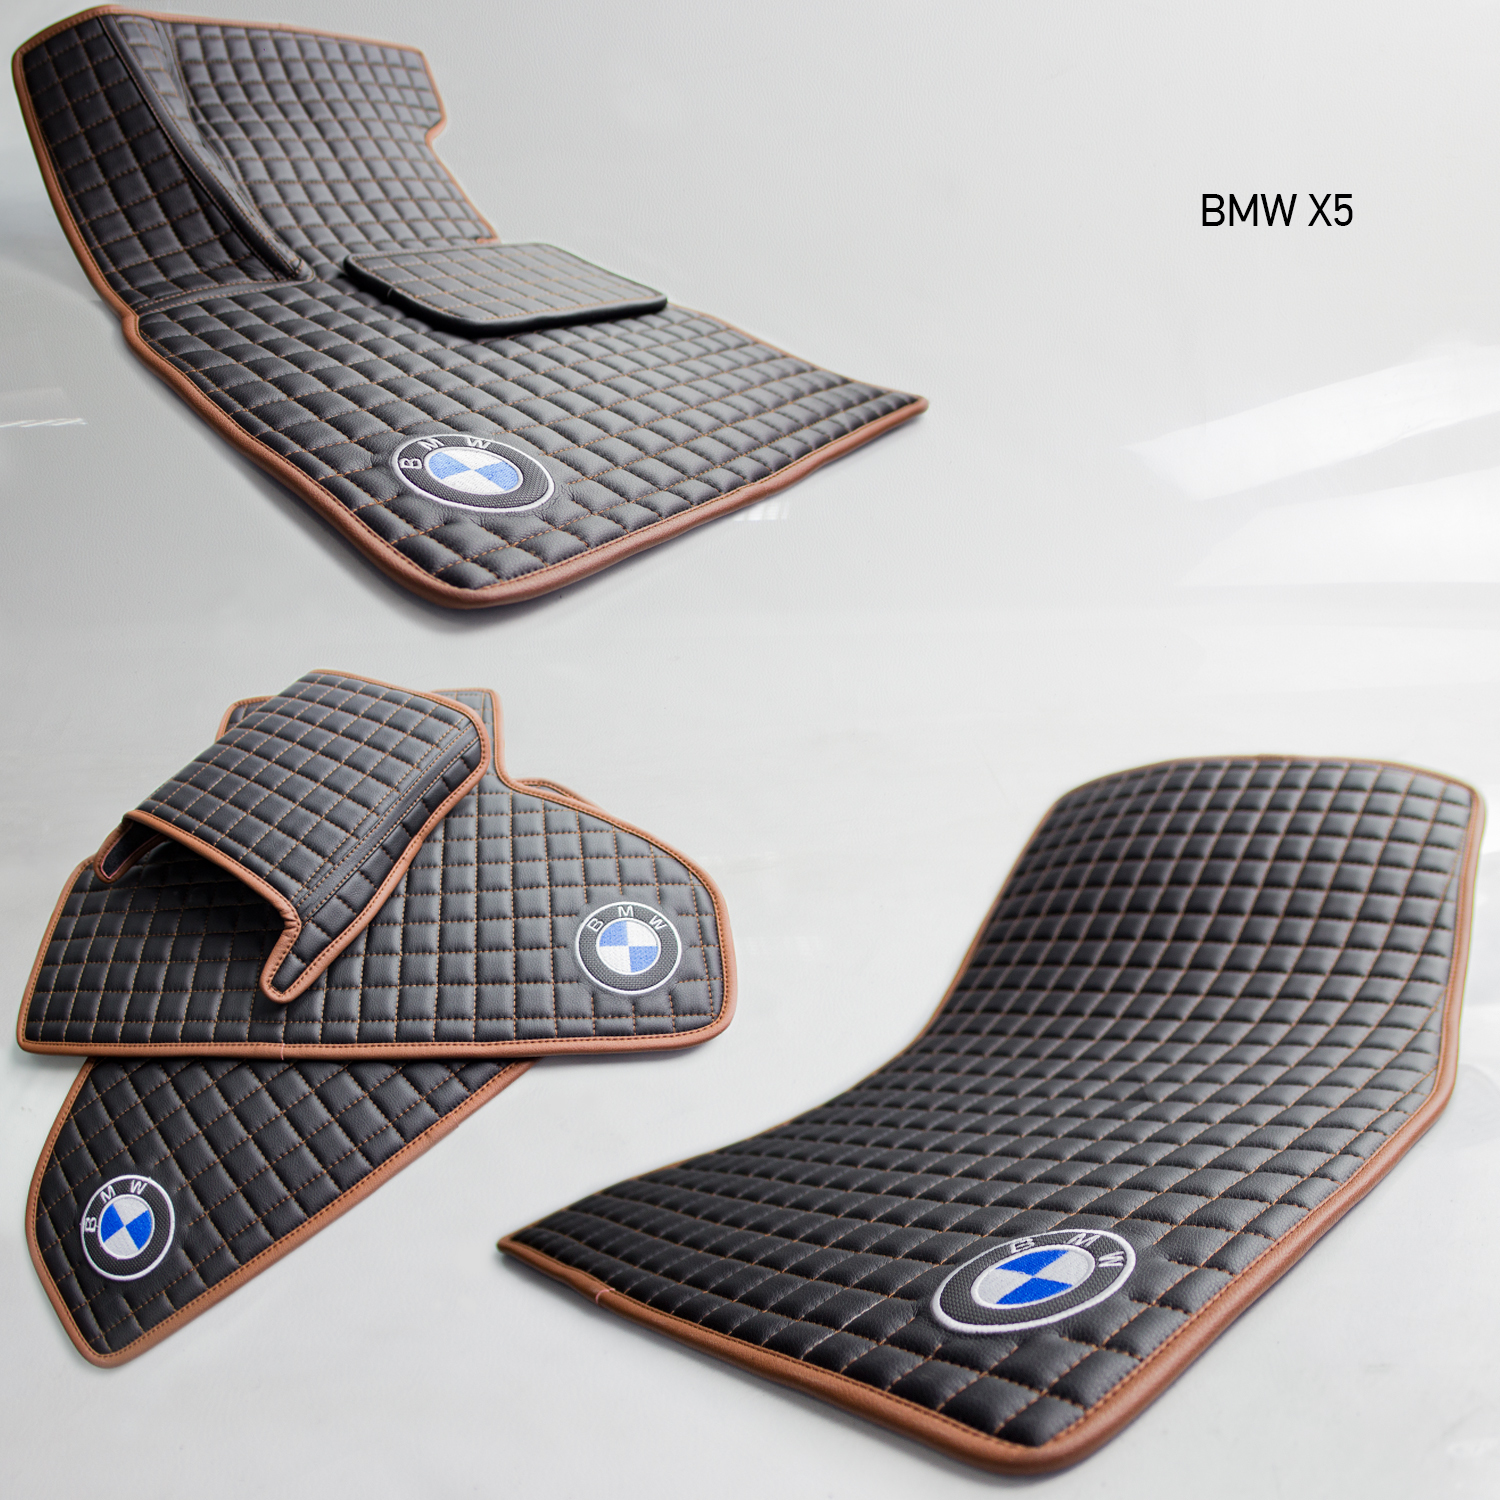 images-products-1-7895-232988375-BMW_X5SS.jpg